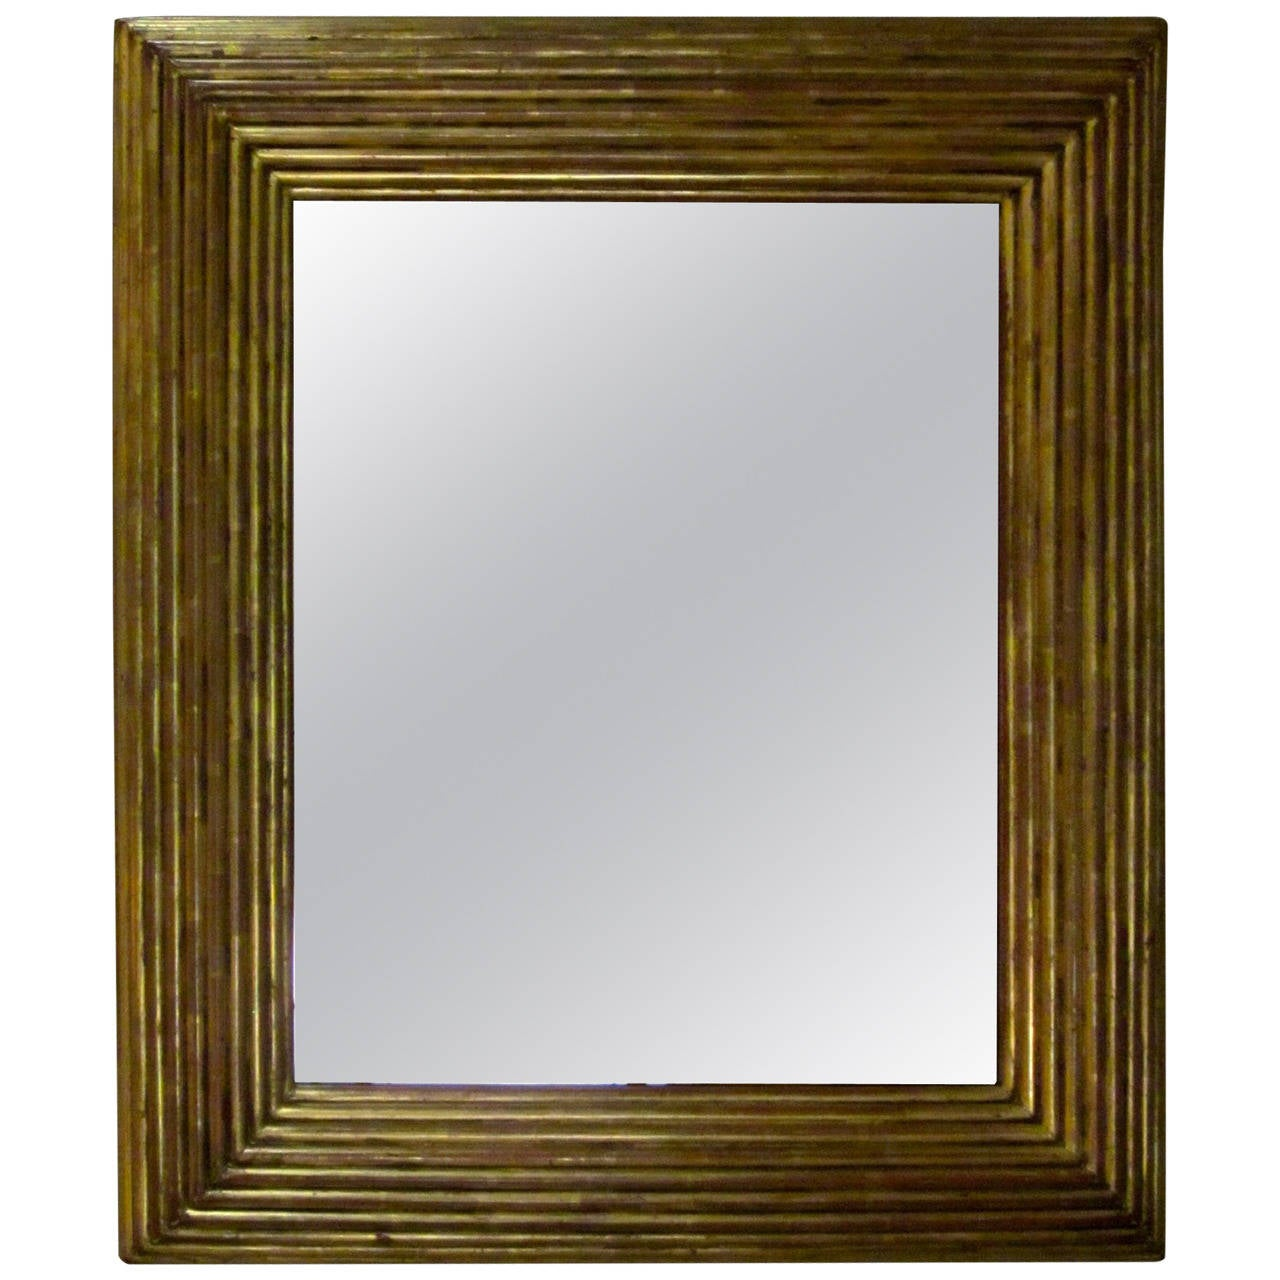 Spanish Gold Gilt Ribbed Wood Frame Mirror, circa 19th Century For Sale